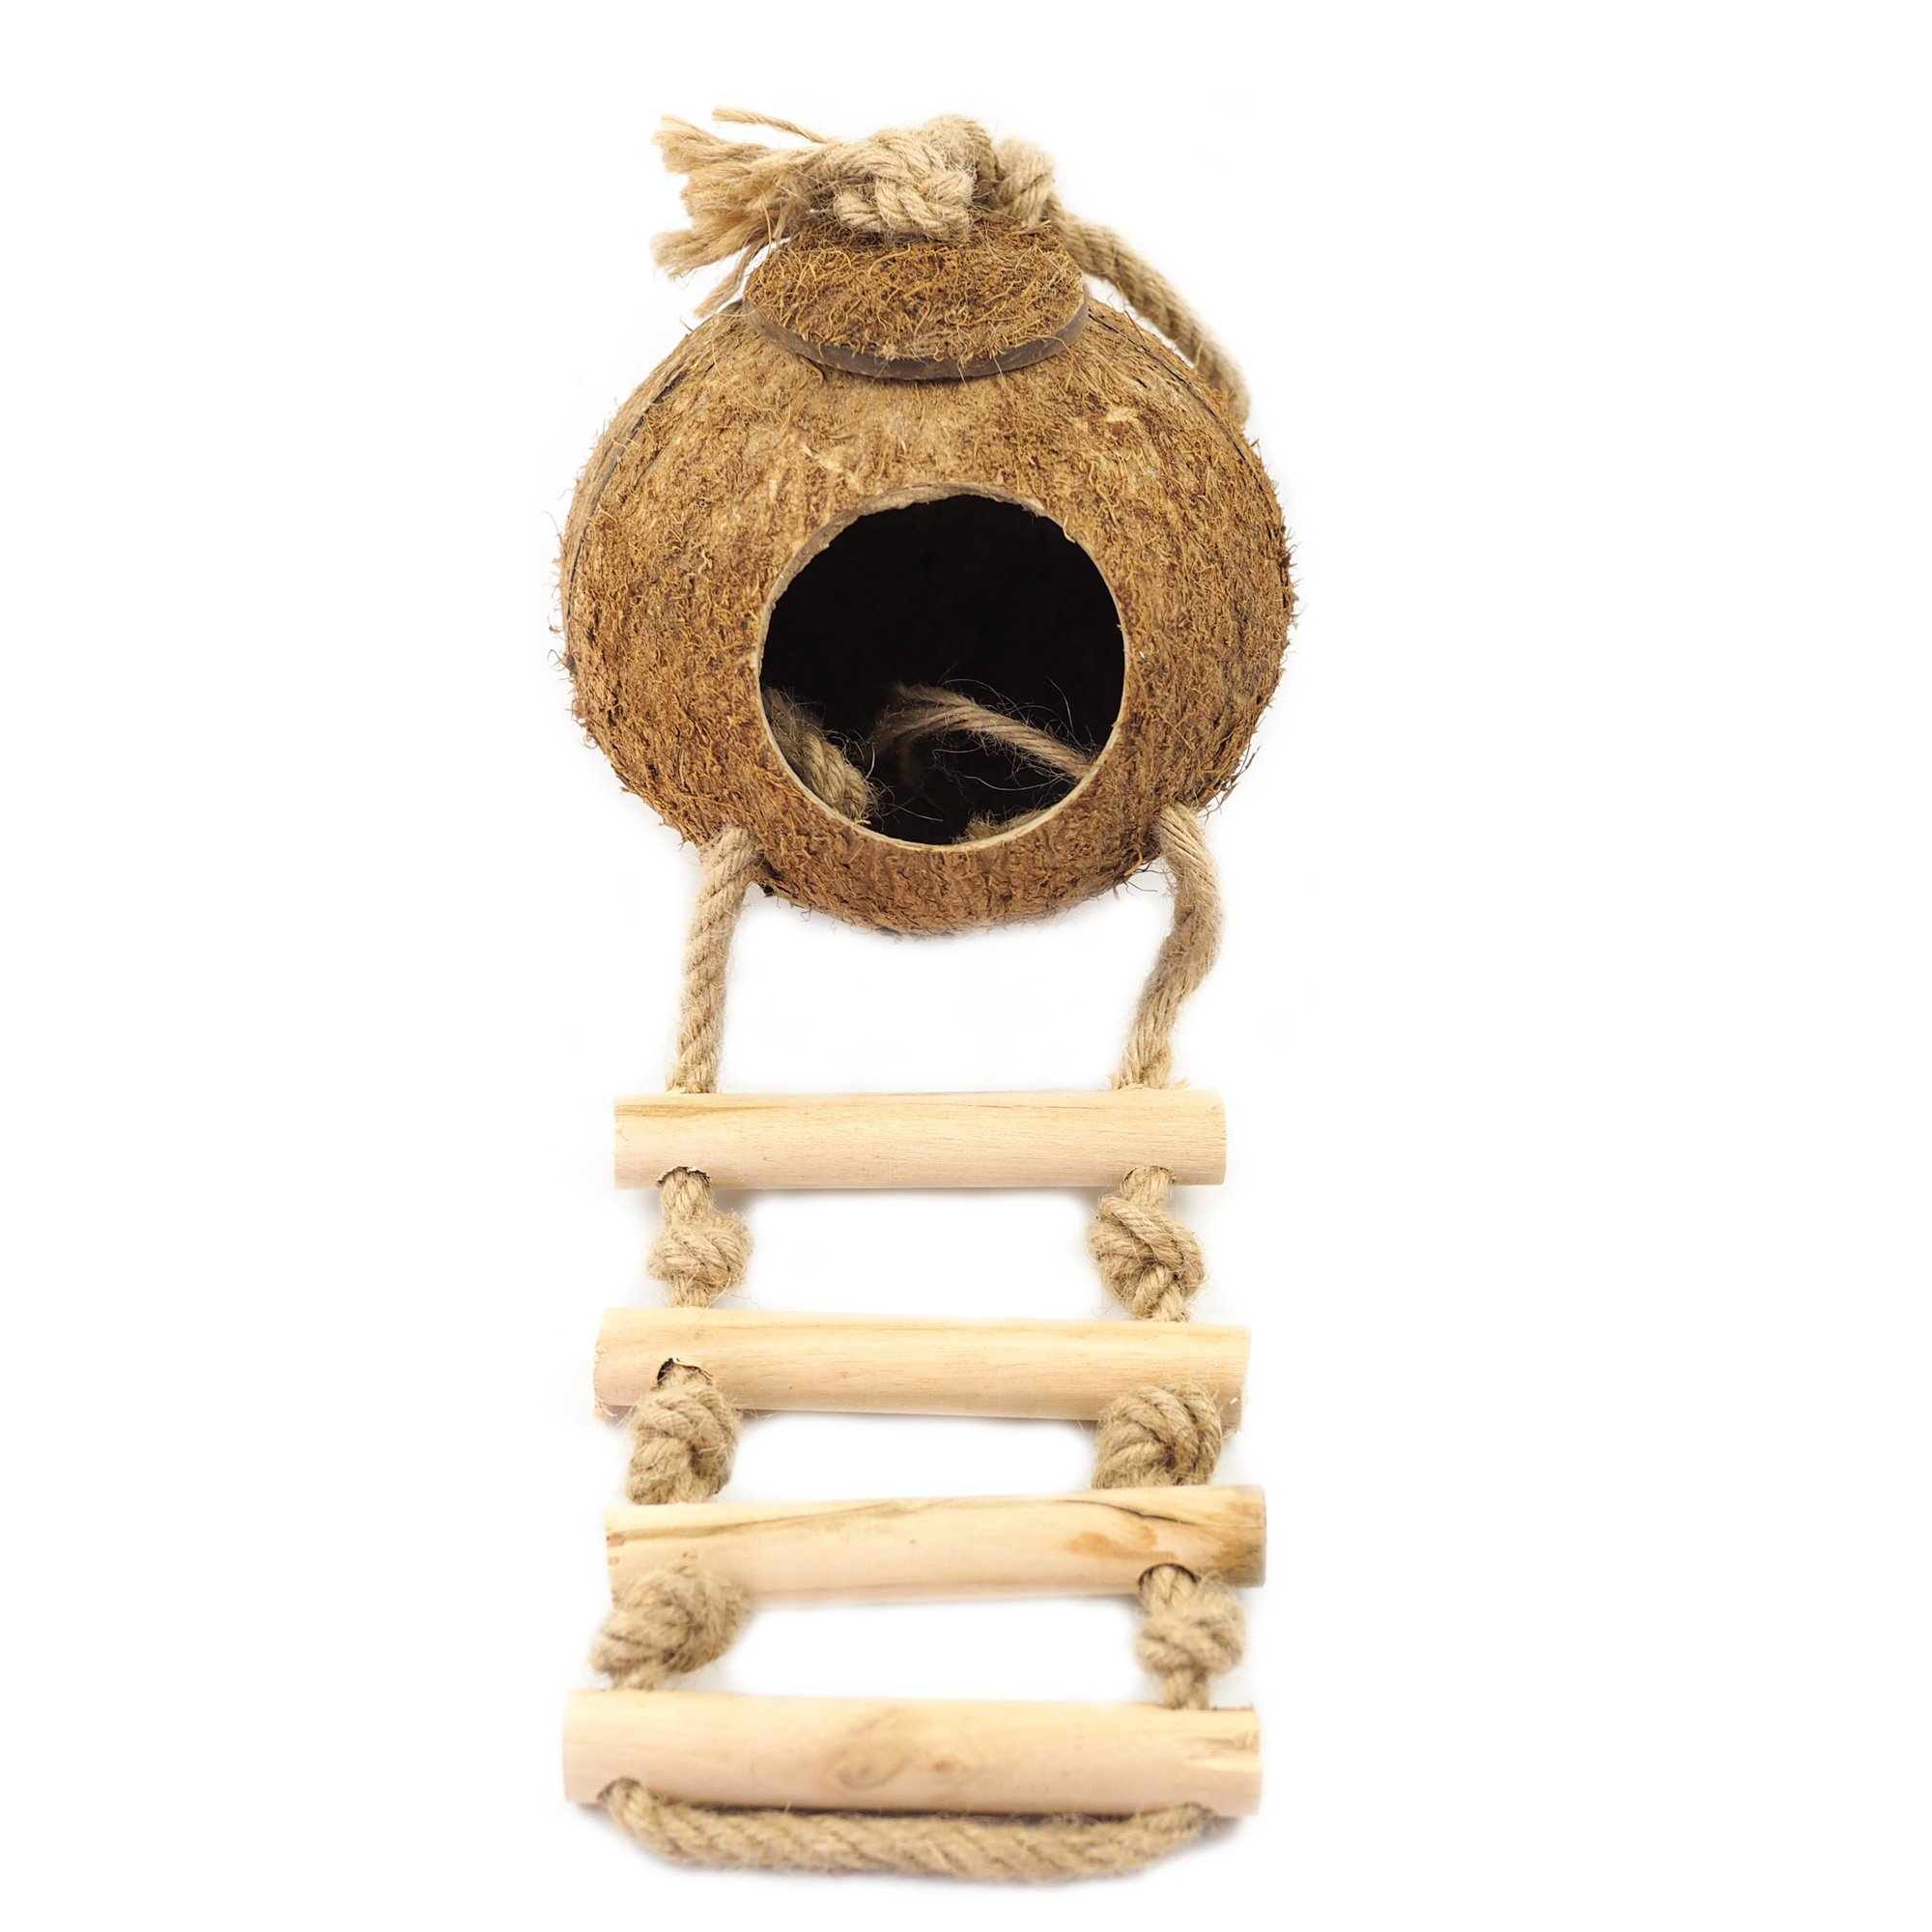 OMEM Coconut Shell Bird House,Hamster Cage and Hideouts with Ladder,Bird Cage Toy